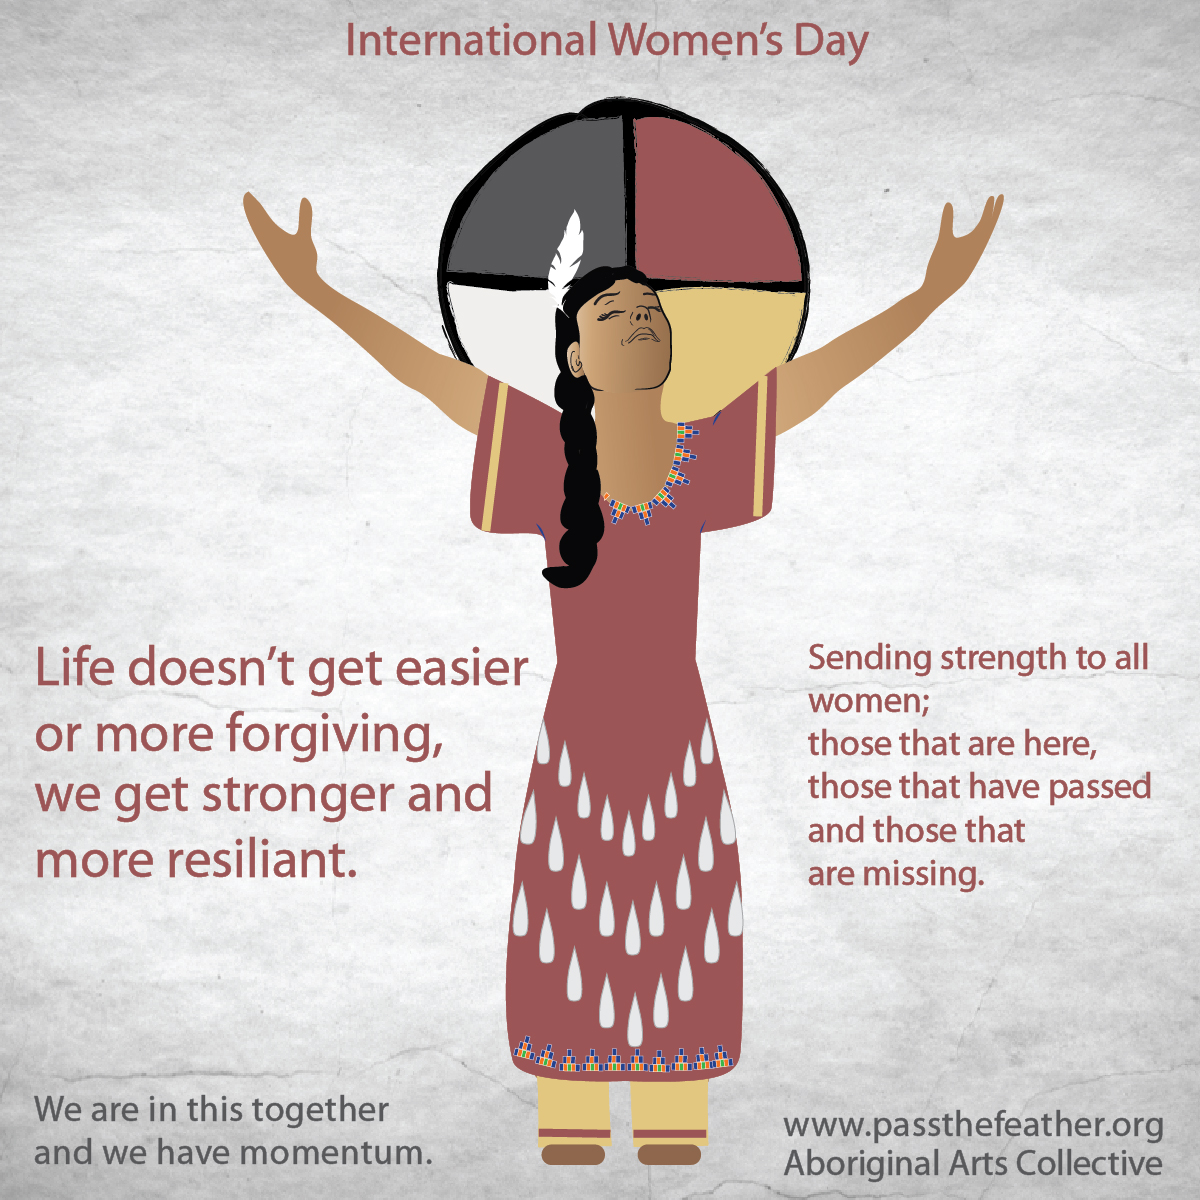 Women's-Day, Facebook posts, pass the feather